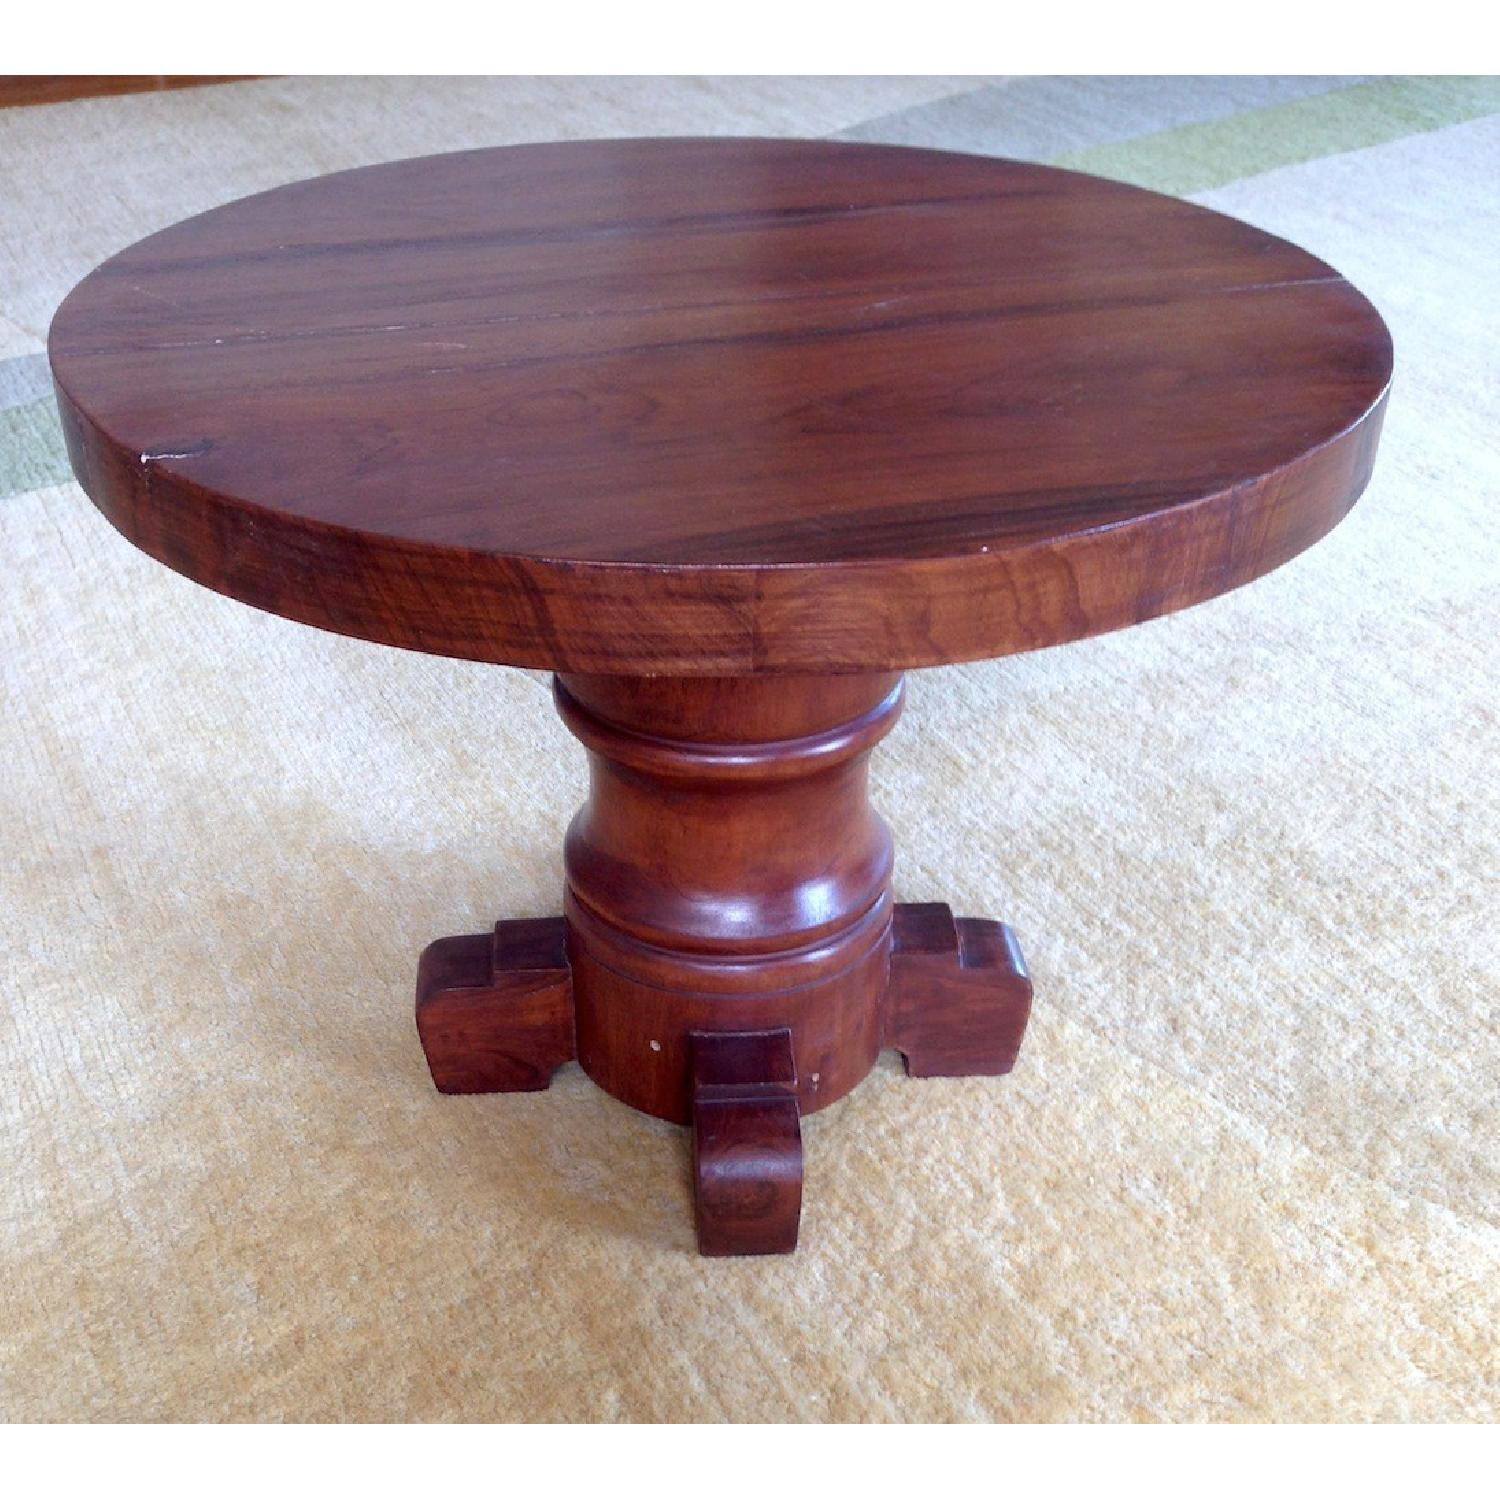 ABC Carpet & Home Round Wooden Table - image-1